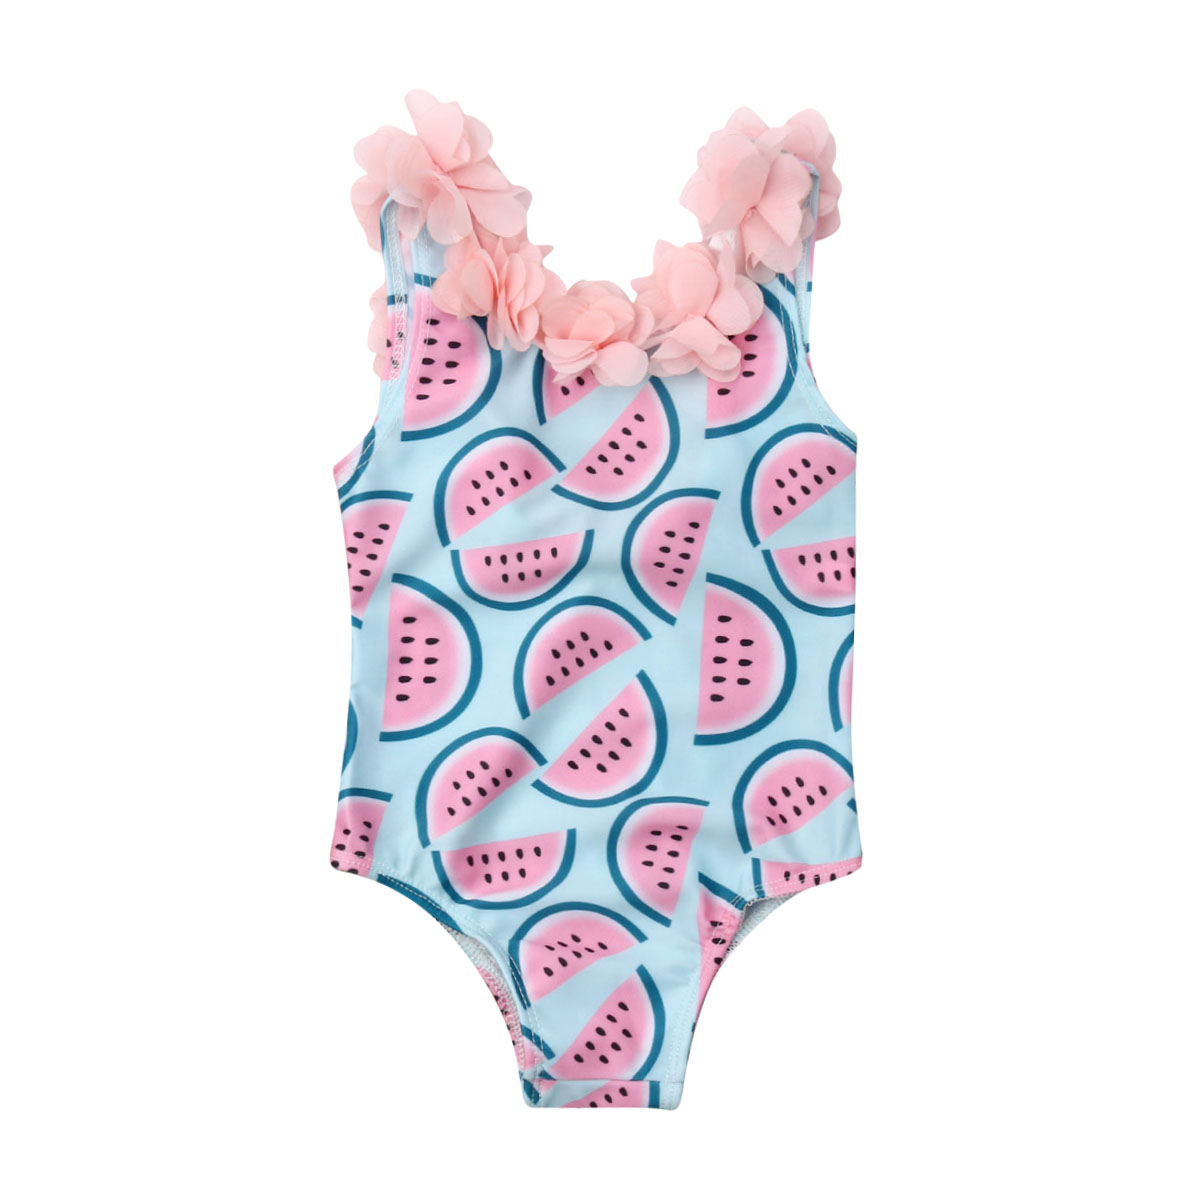 Pudcoco Girls Watermelon Swimwear Bikini Bodysuit Toddler One-Piece Baby Infant for 0-4years title=